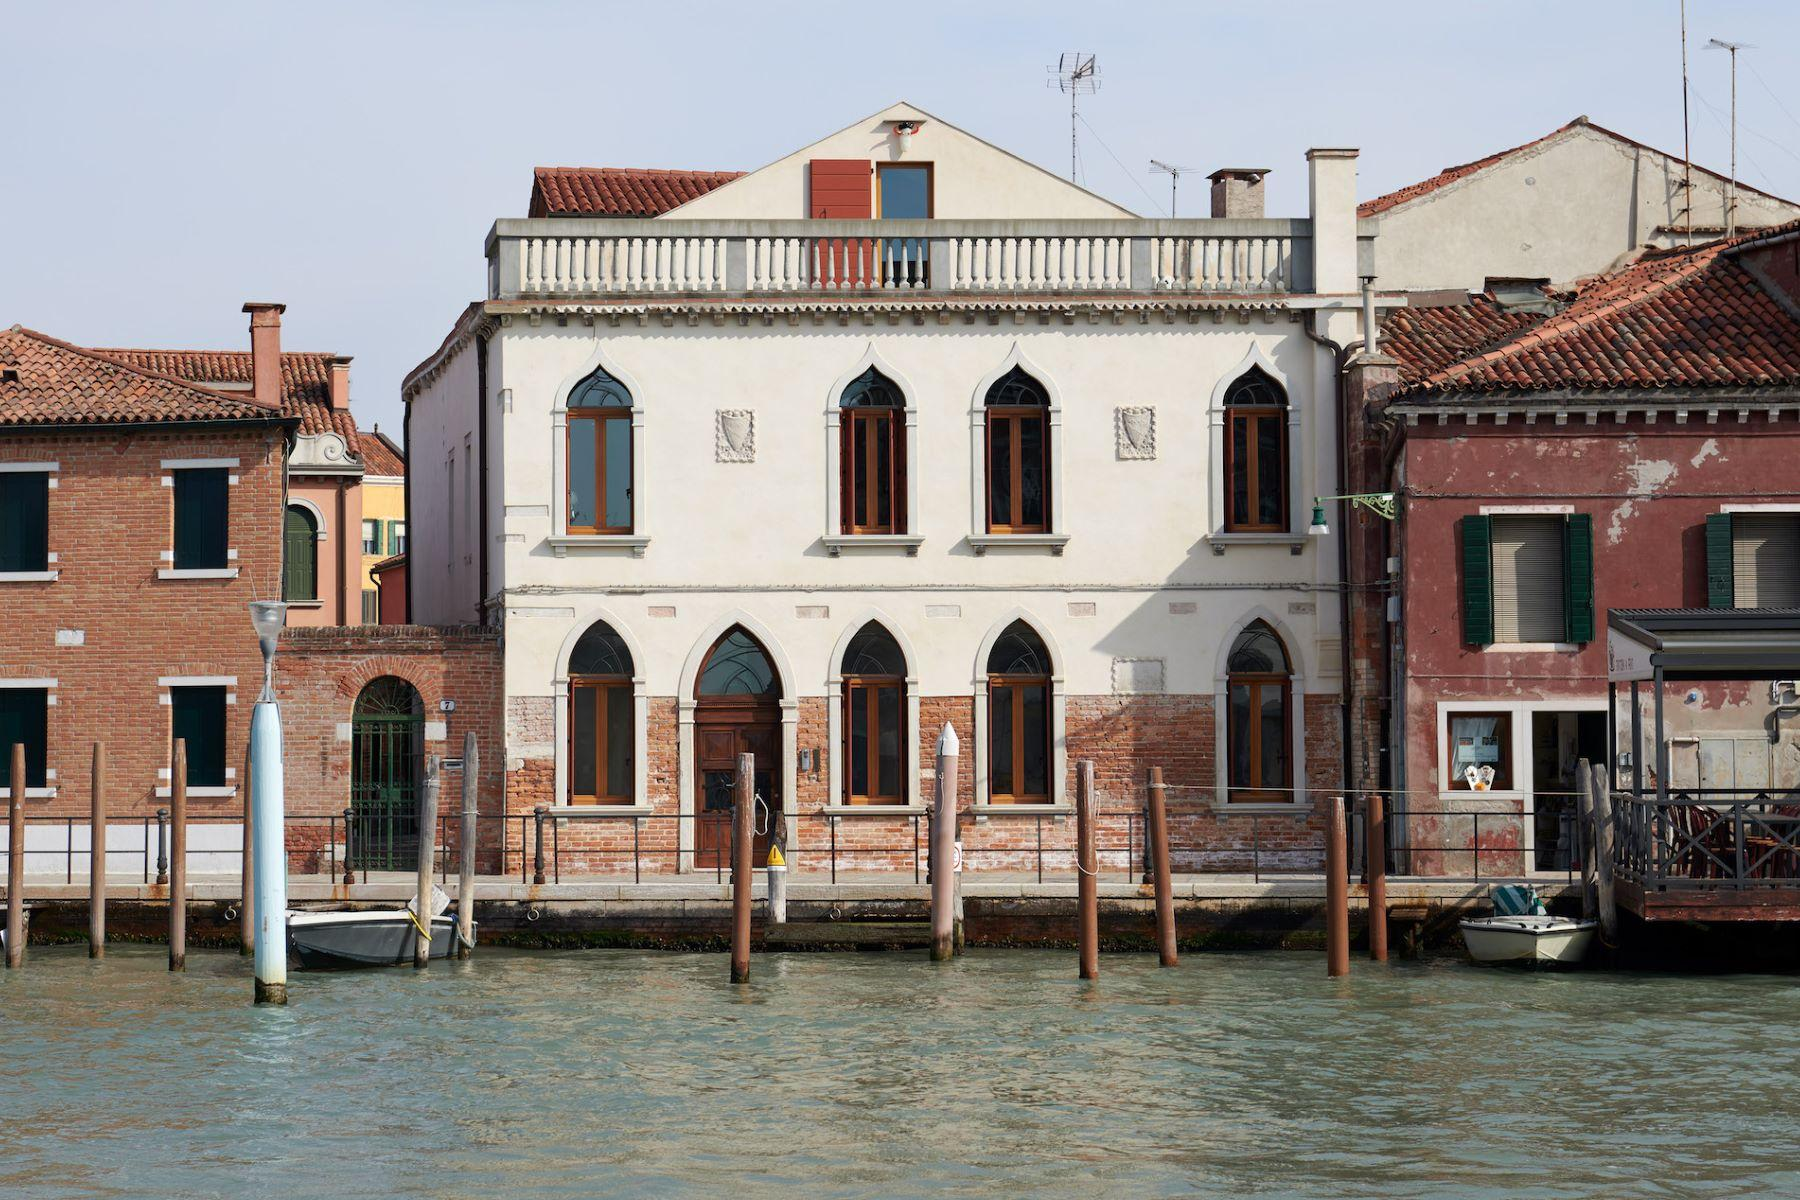 Palast de Verre am Meer in Murano - 2